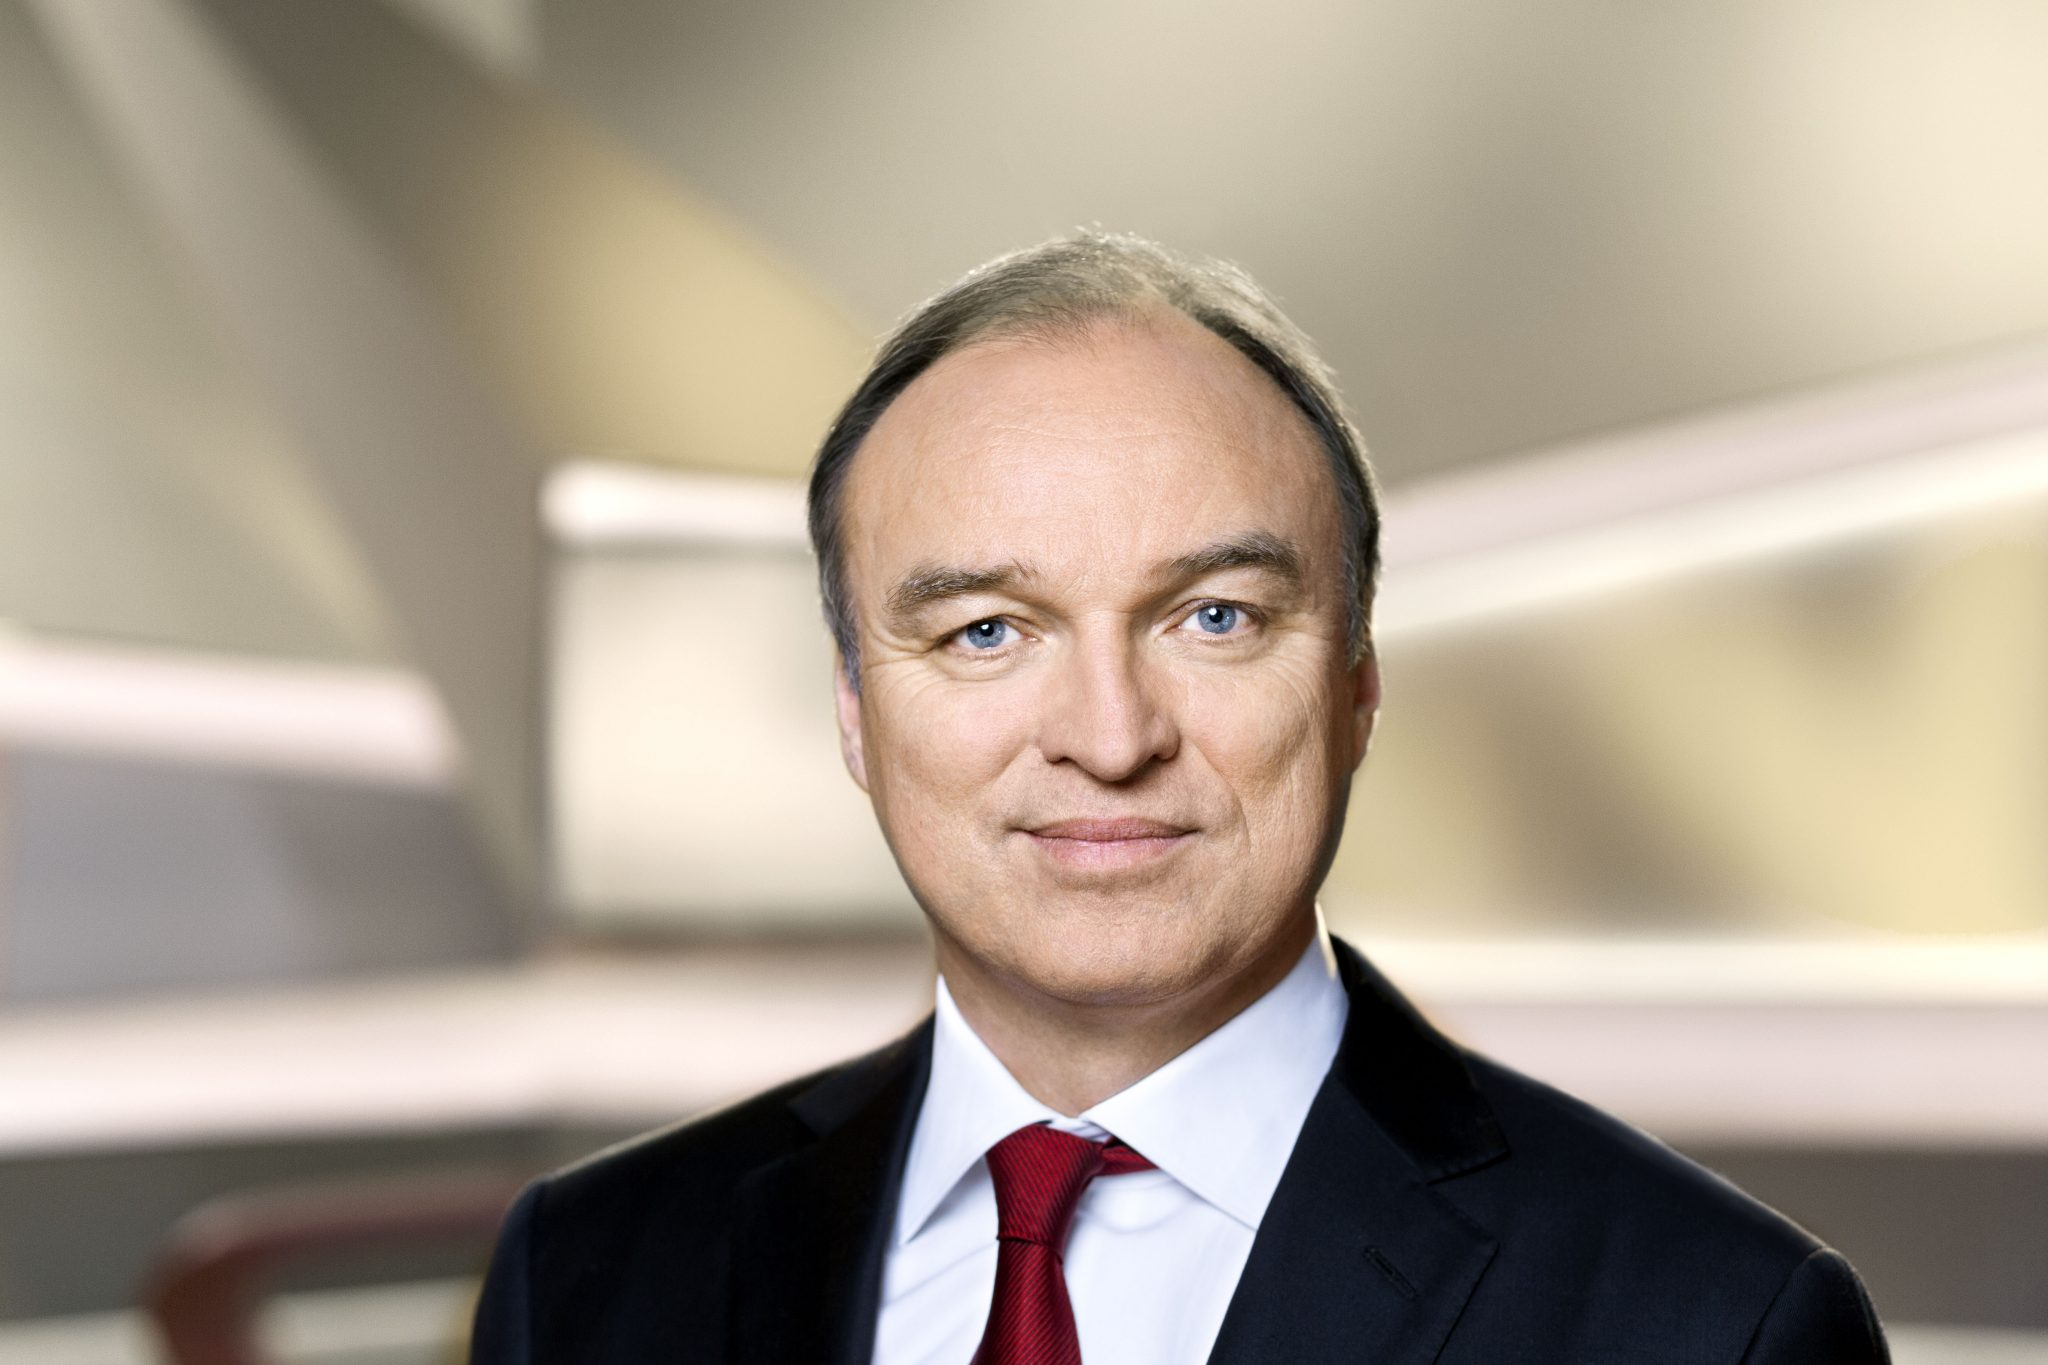 ProSiebenSat.1 higher as CEO exit fuels acquisition hopes